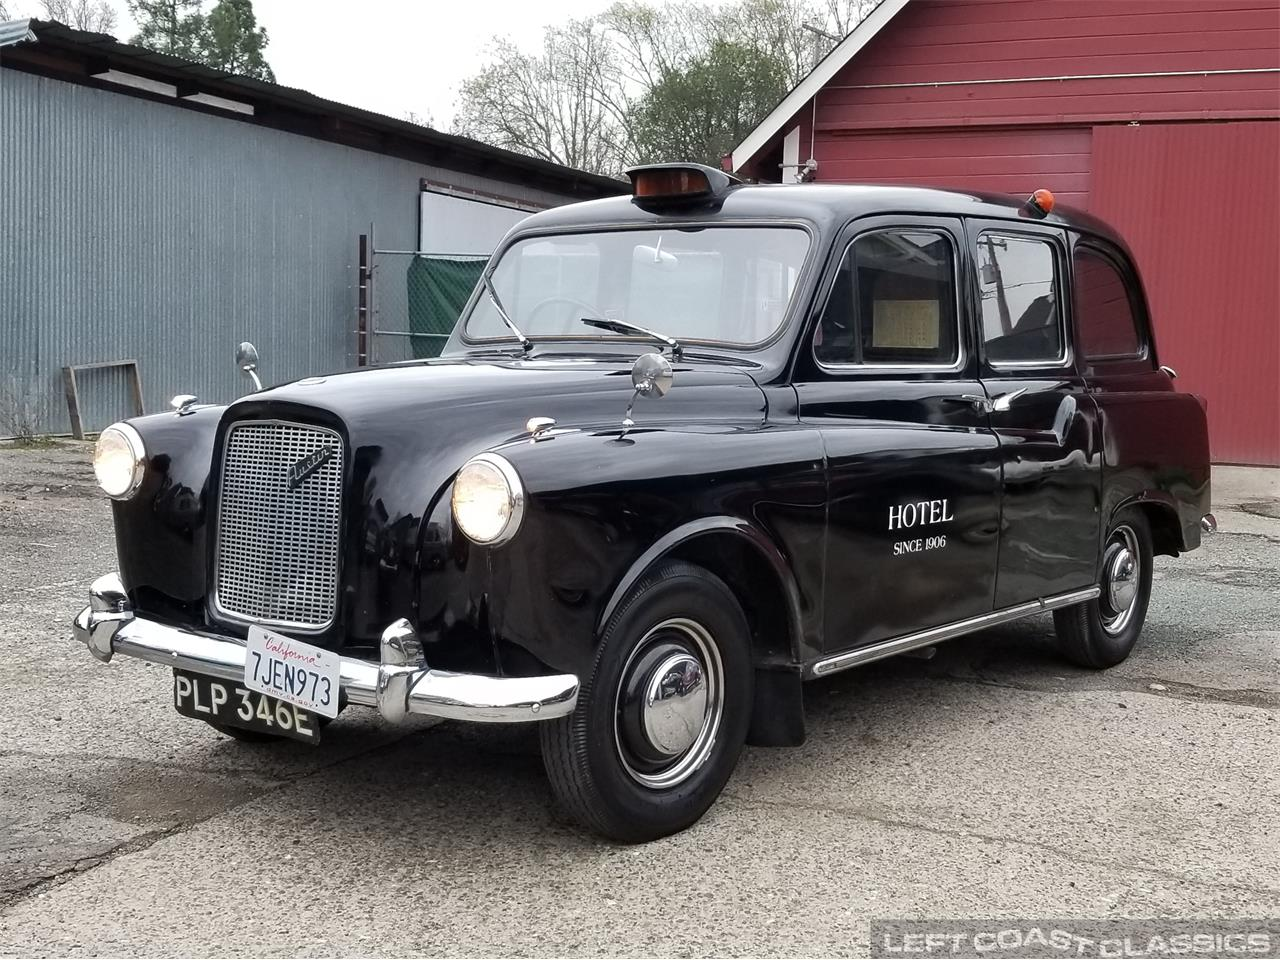 Large Picture of 1967 FX4 Taxi Cab - PKBX